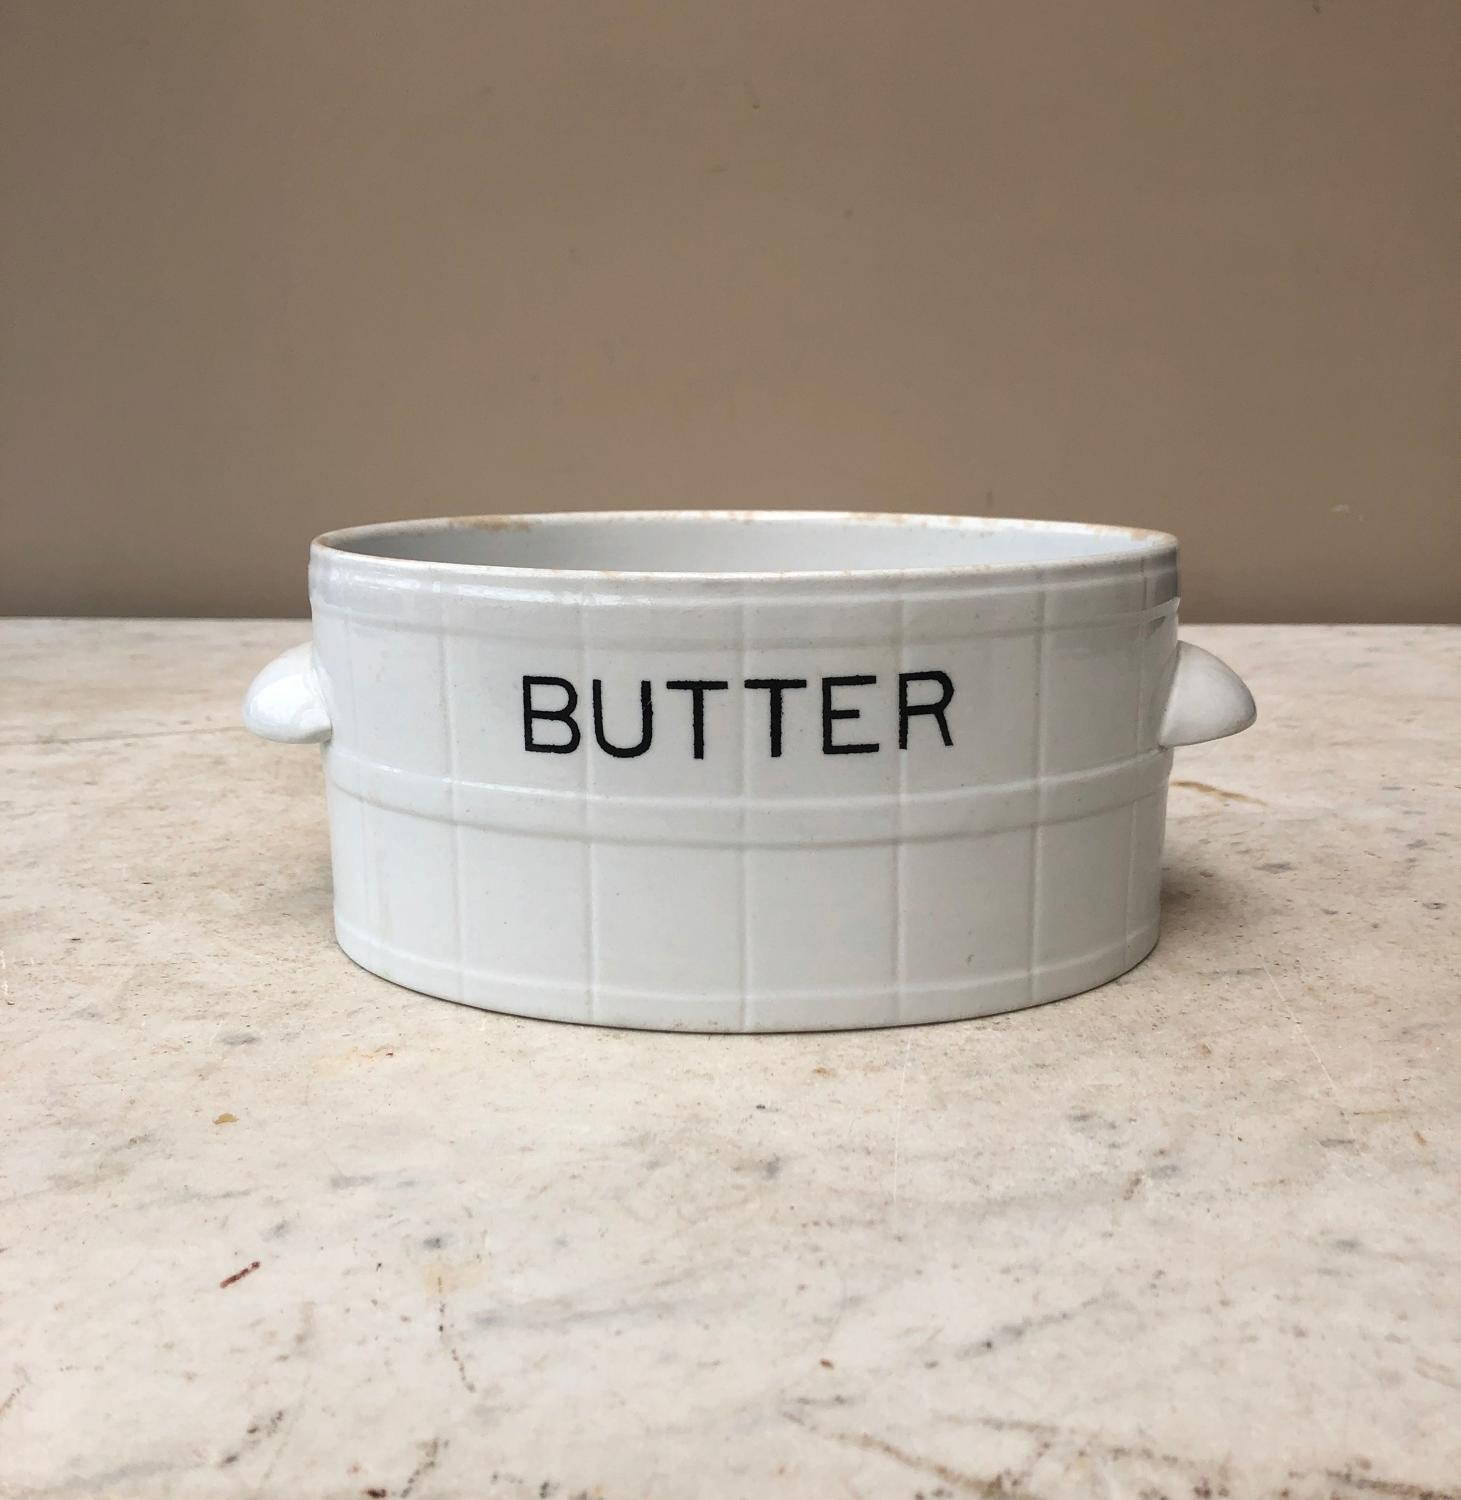 Edwardian White Ironstone Banded Butter Dish with Side Handles